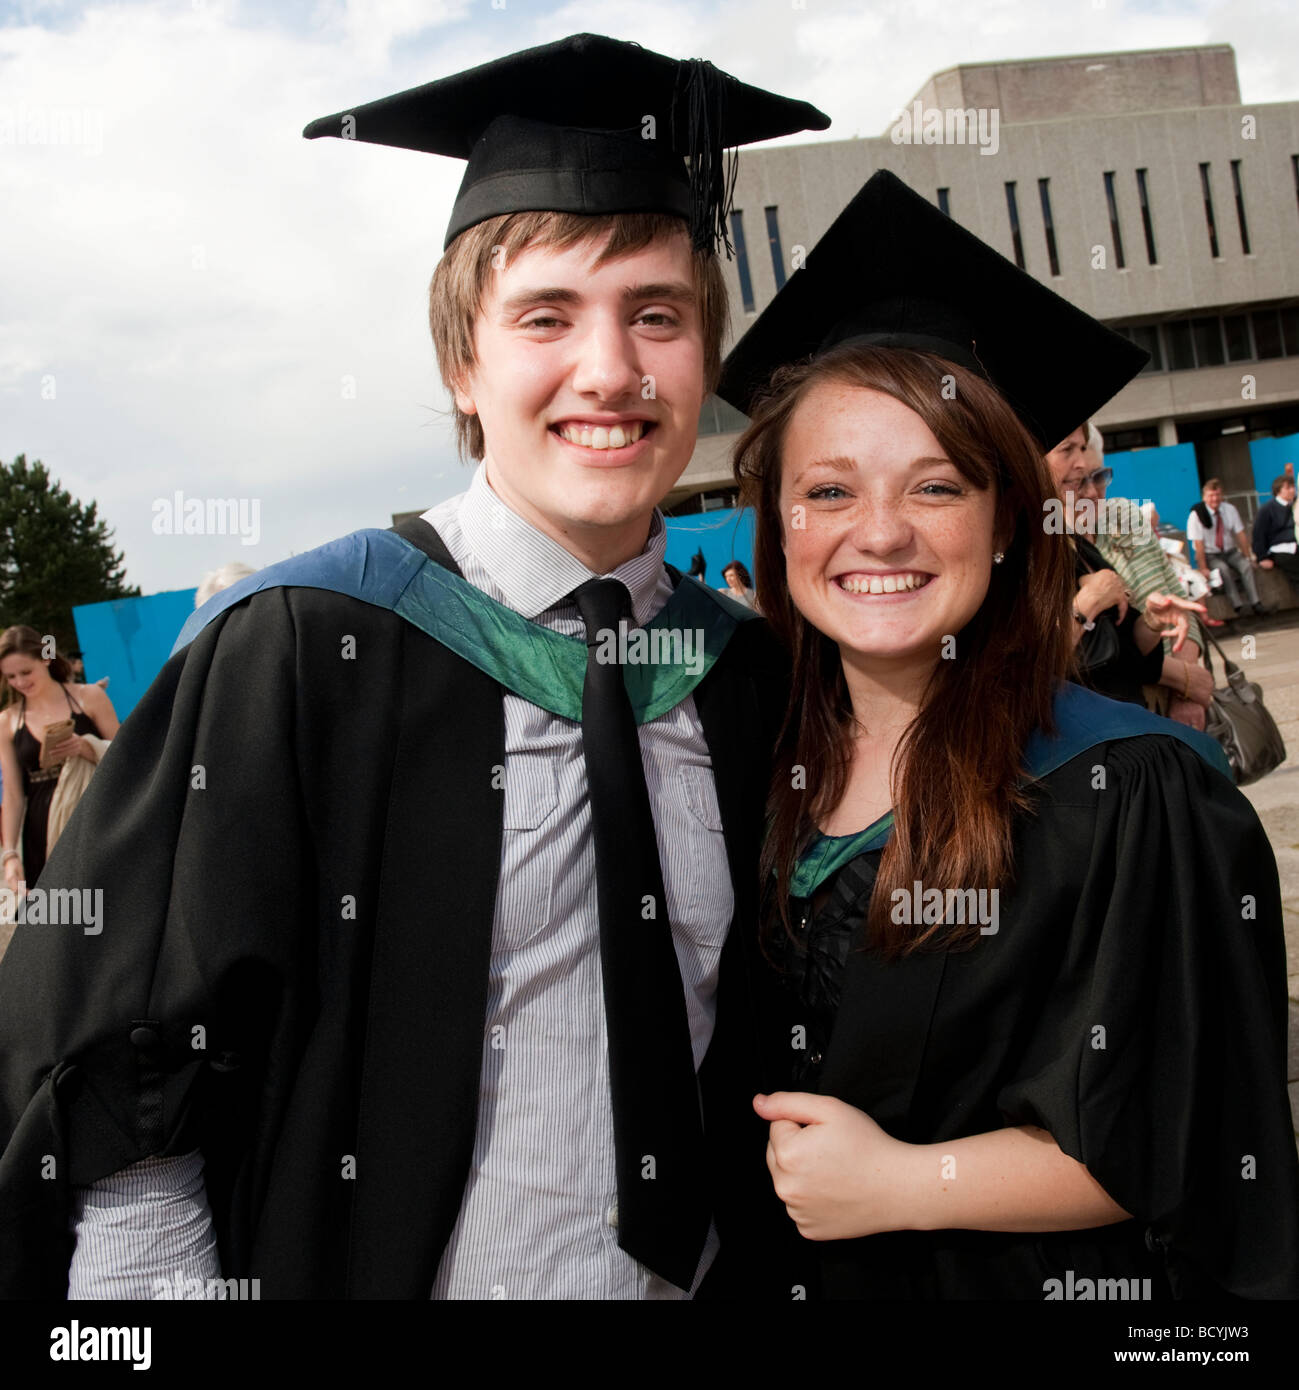 Ex Students Wearing Gown And Mortar Board On Graduation Day Stock ...